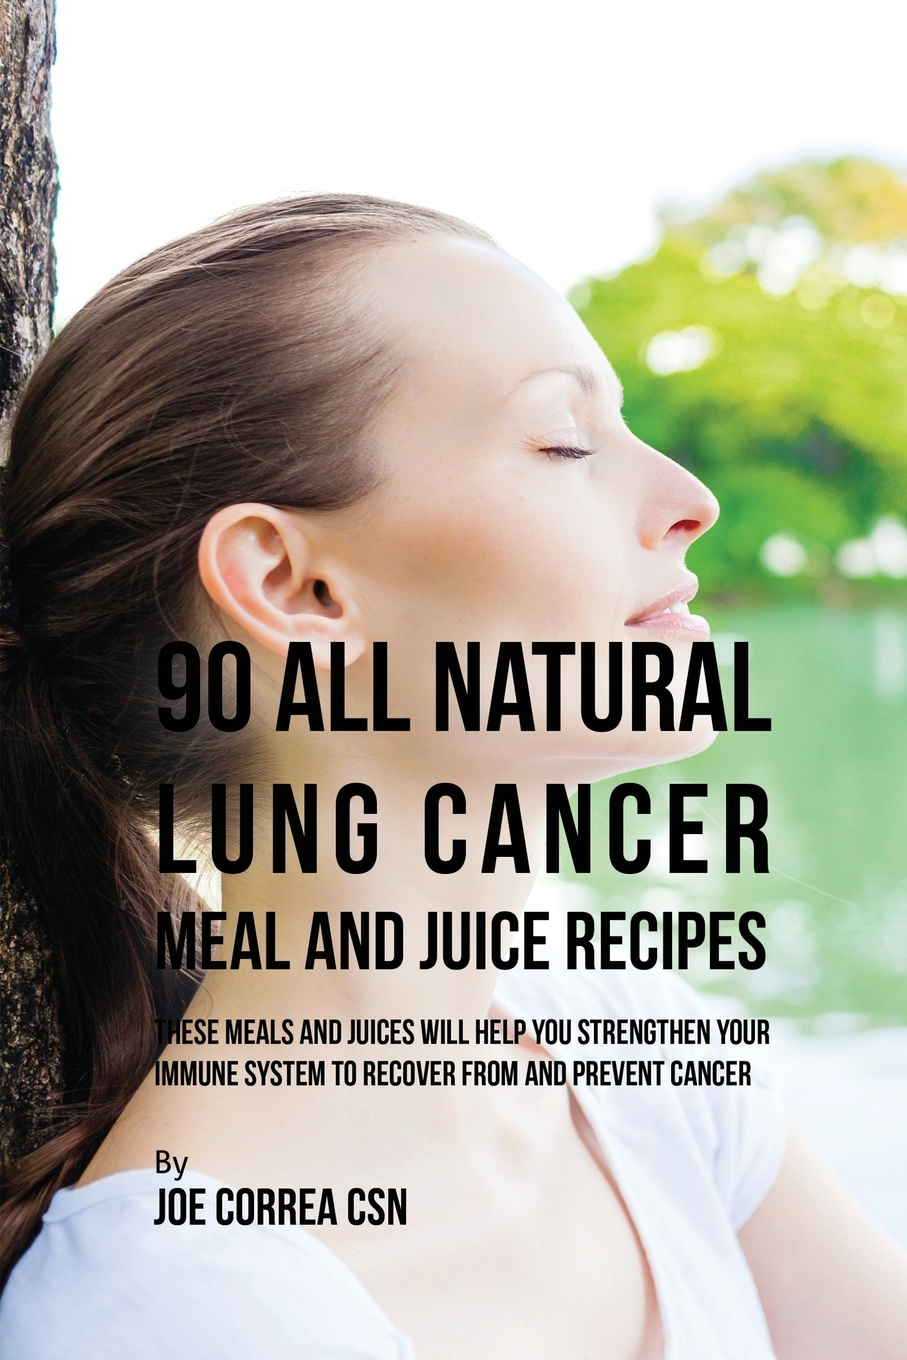 Joe Correa 90 All Natural Lung Cancer Meal and Juice Recipes. These Meals and Juices Will Help You Strengthen Your Immune System to Recover from and Prevent Cancer characterization of microparticles for lung cancer delivery